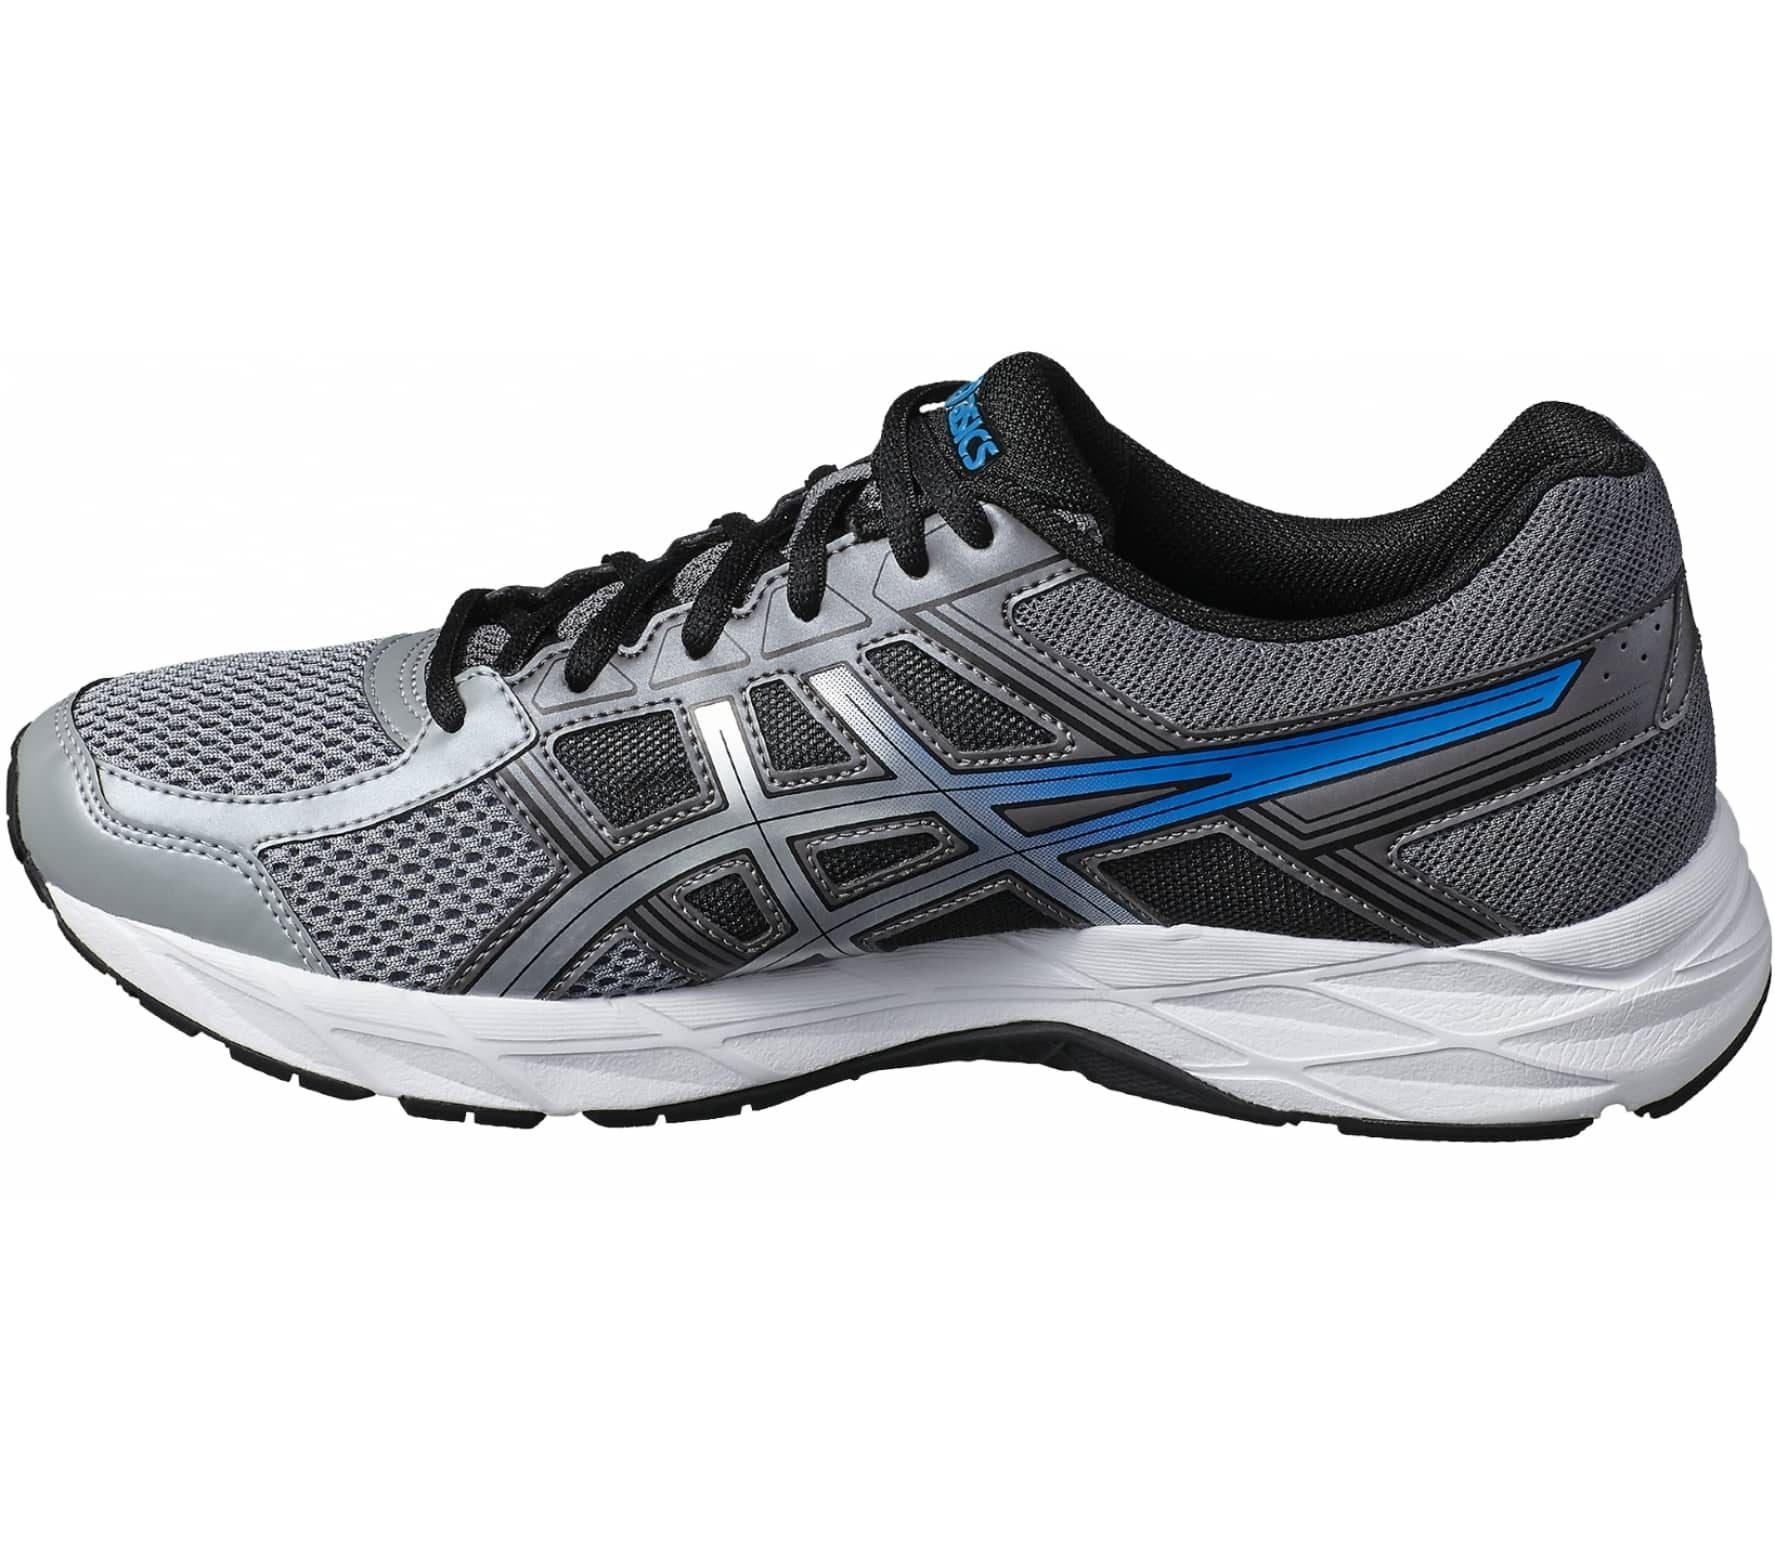 Running Shoes Good For Short Distance And Long Distance